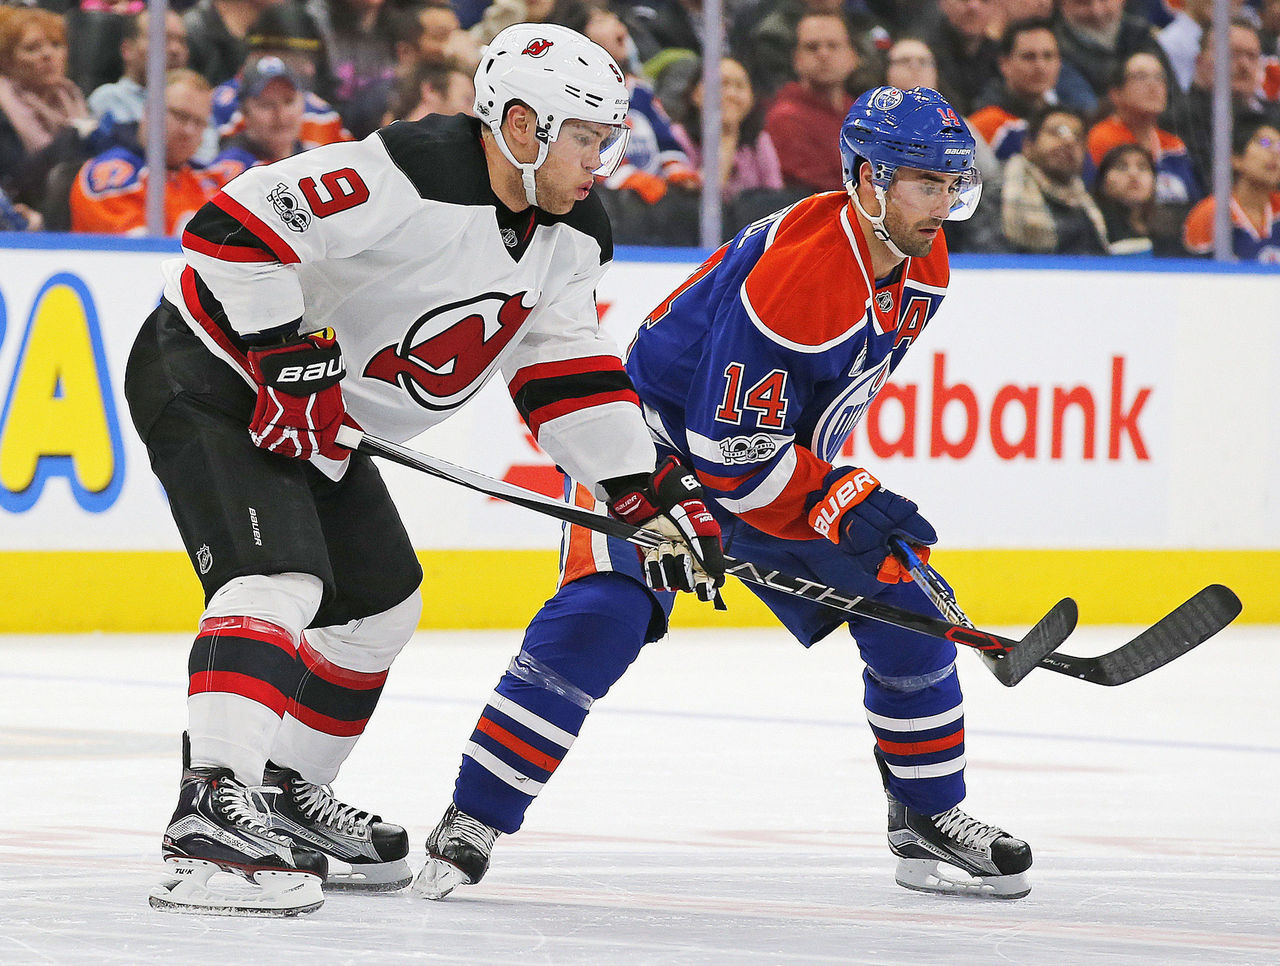 Cropped 2017 01 13t030930z 548988087 nocid rtrmadp 3 nhl new jersey devils at edmonton oilers